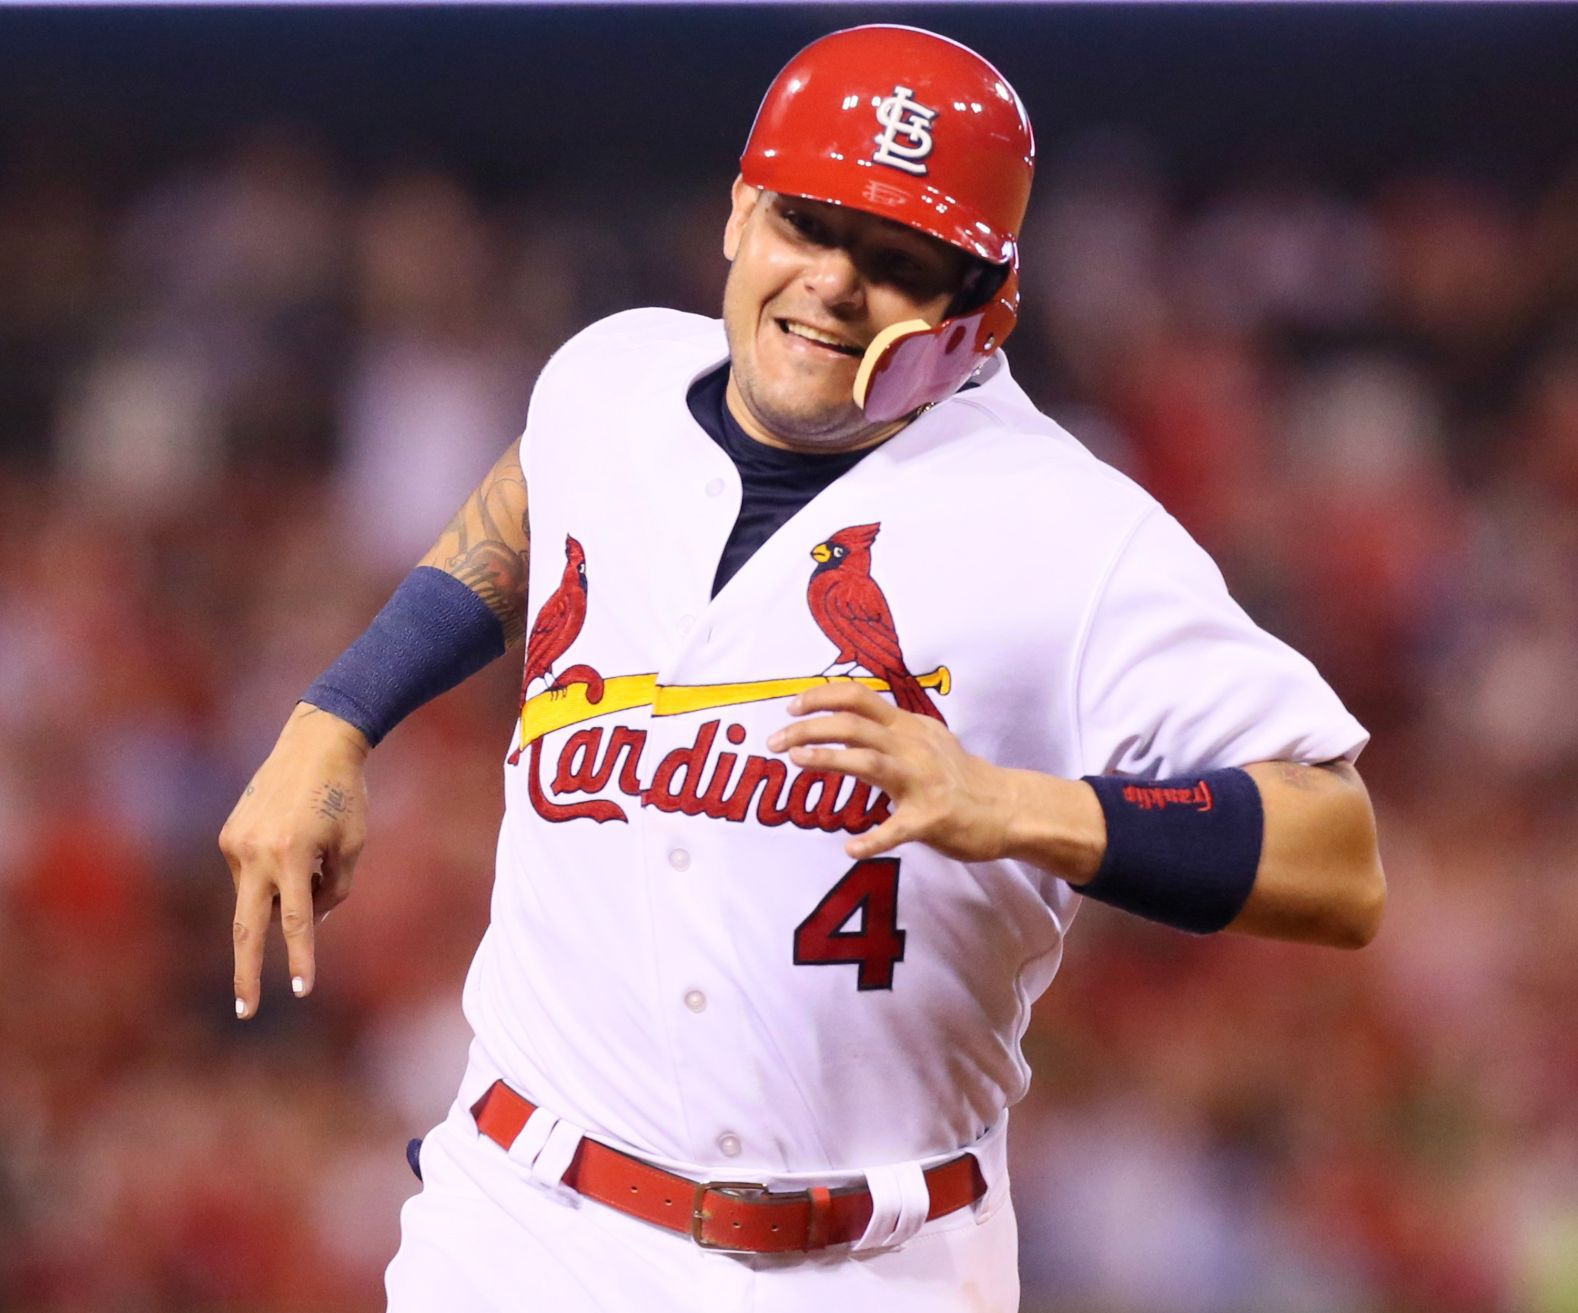 Yadier Molina takes issue with Mike Matheny over quote about fatigue